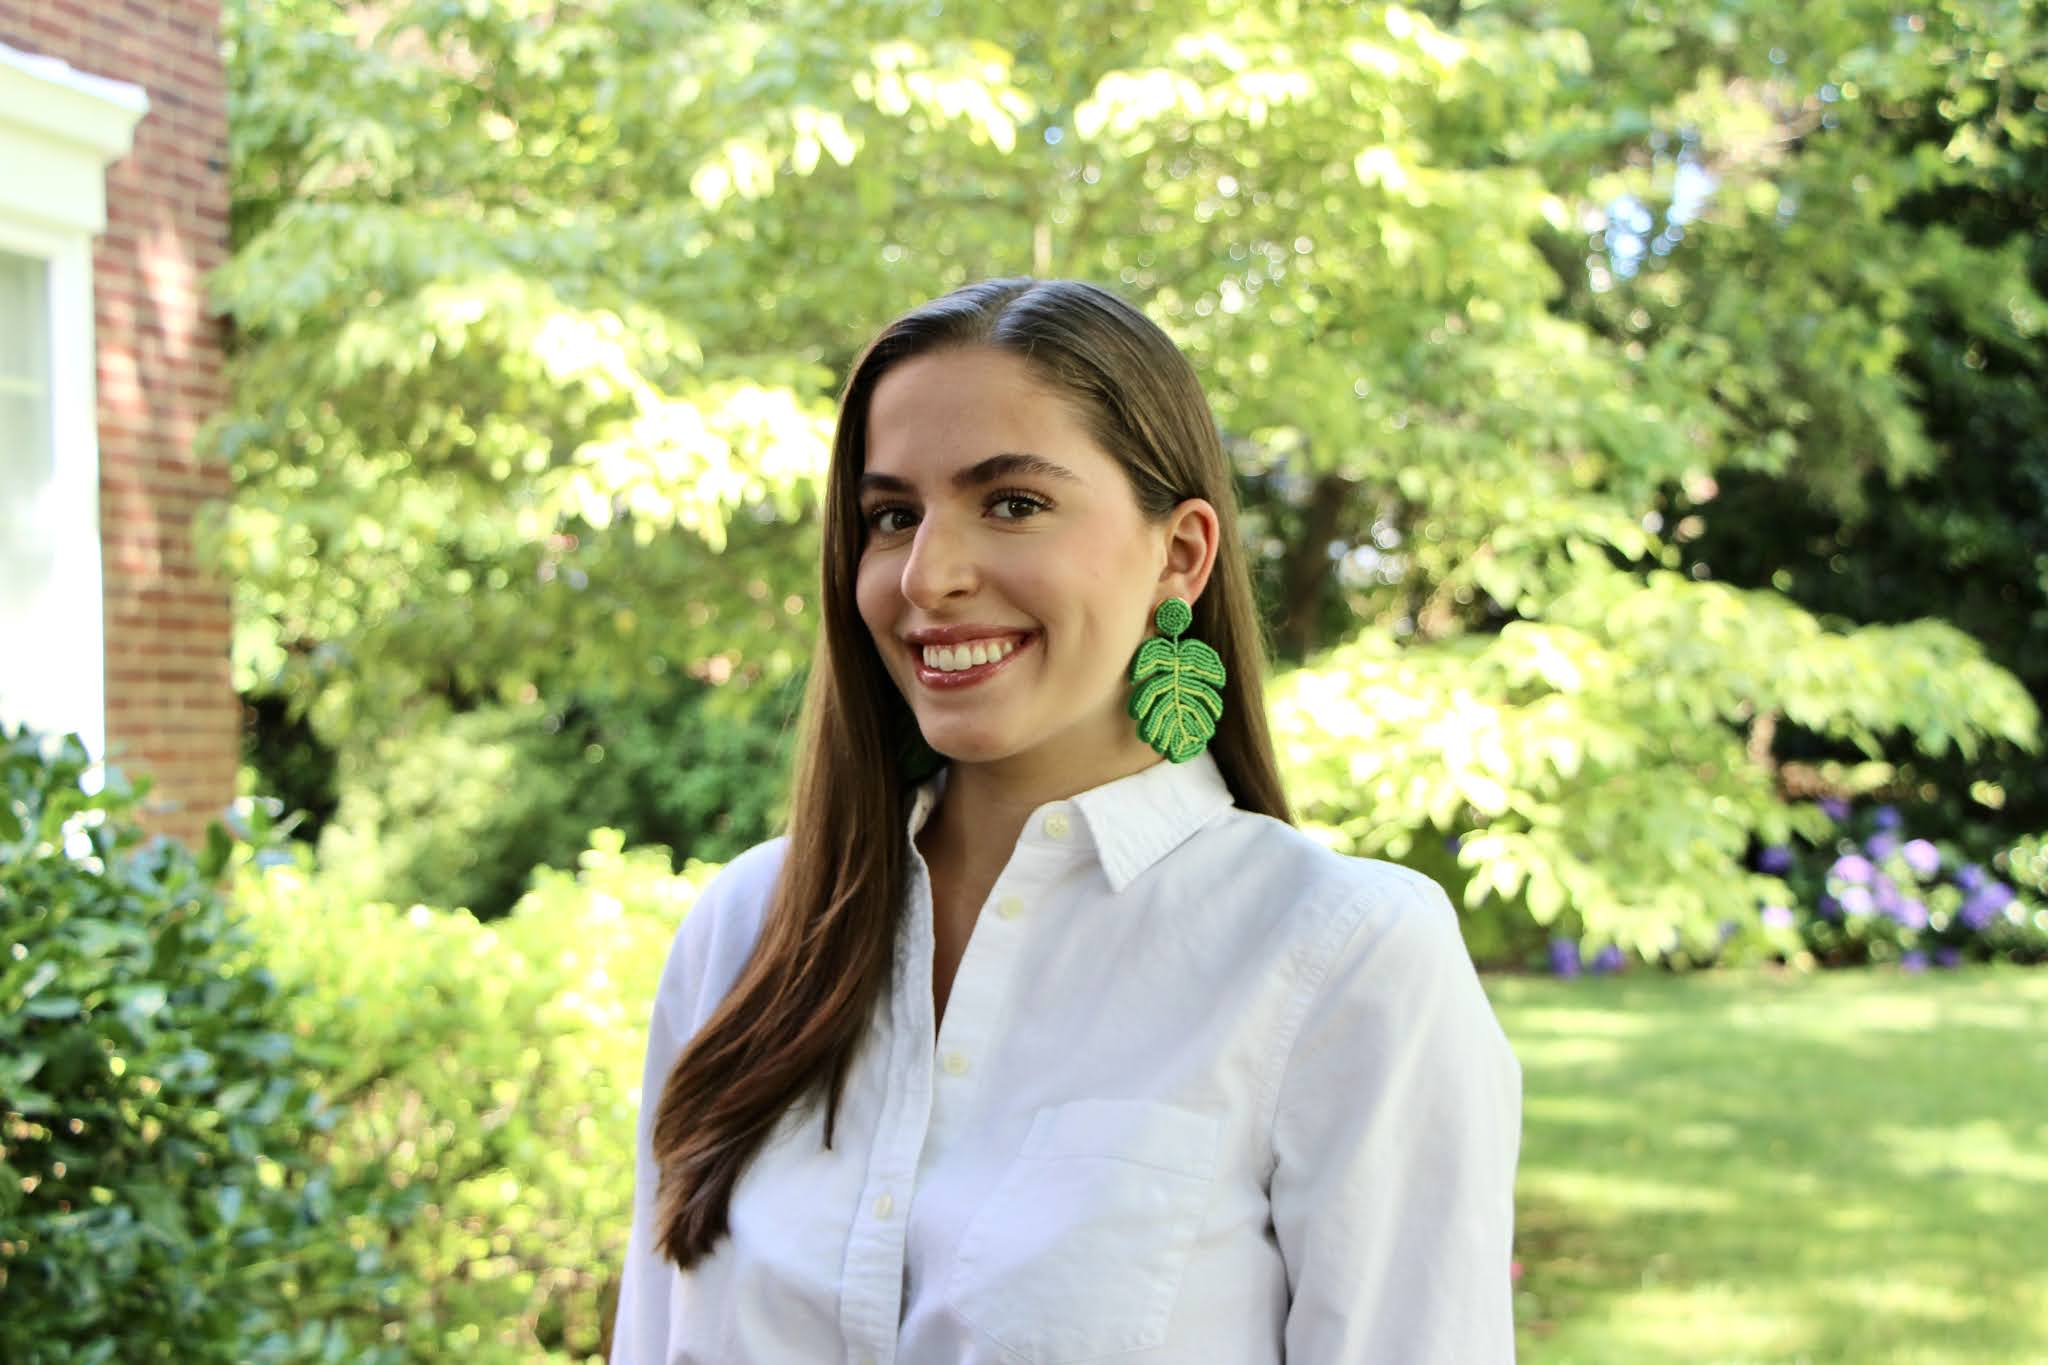 palm frond earrings, statement earrings, white button down